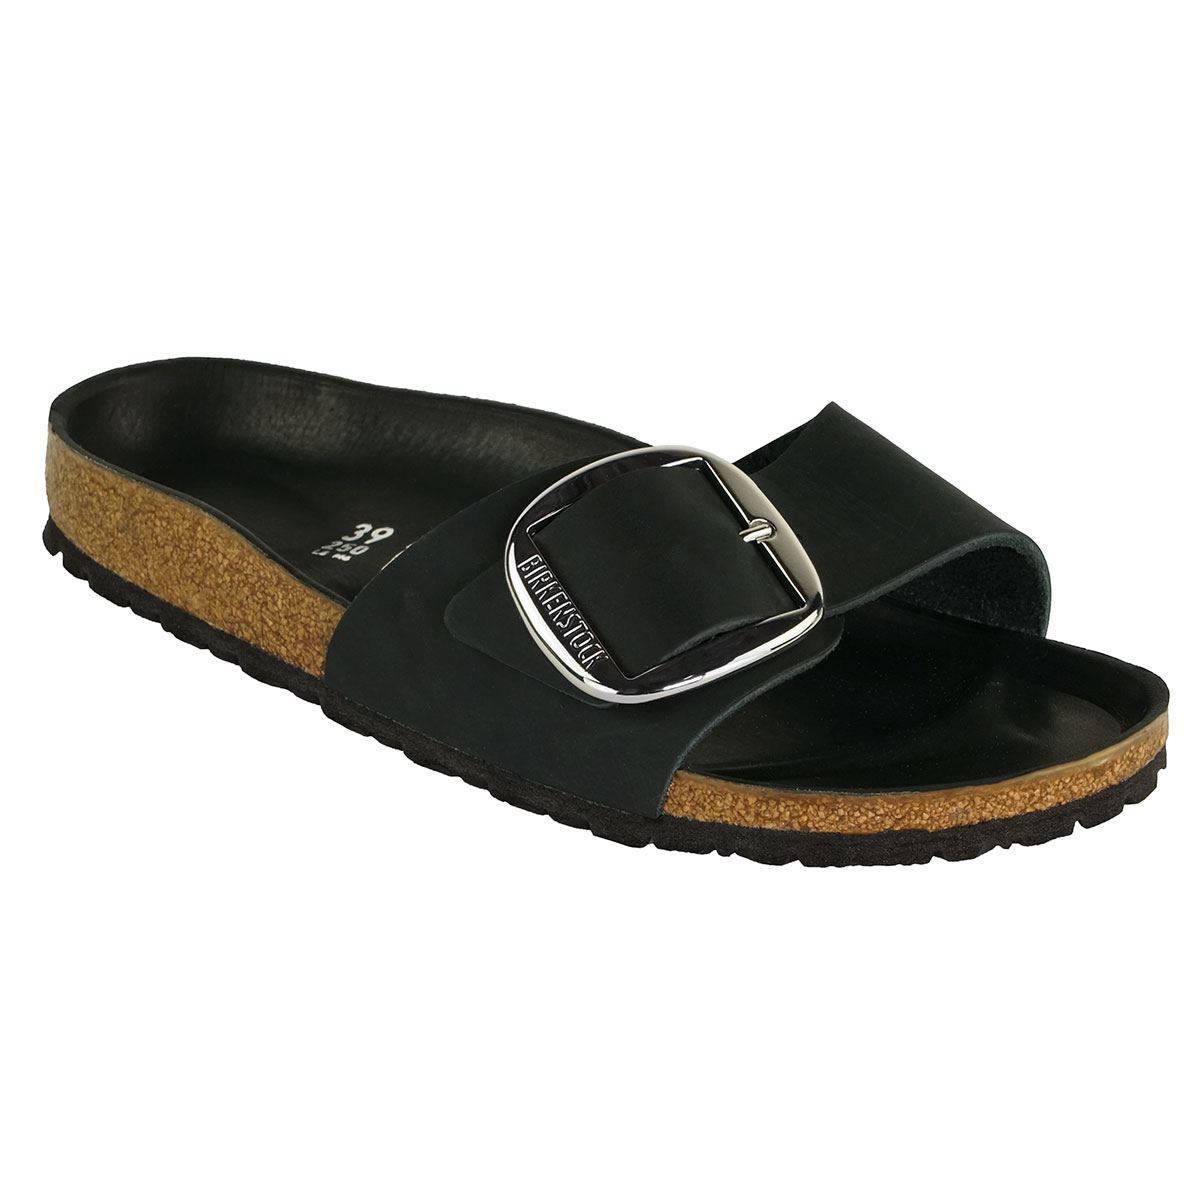 a470b1e40de Birkenstock Madrid Big Buckle Oiled Leather